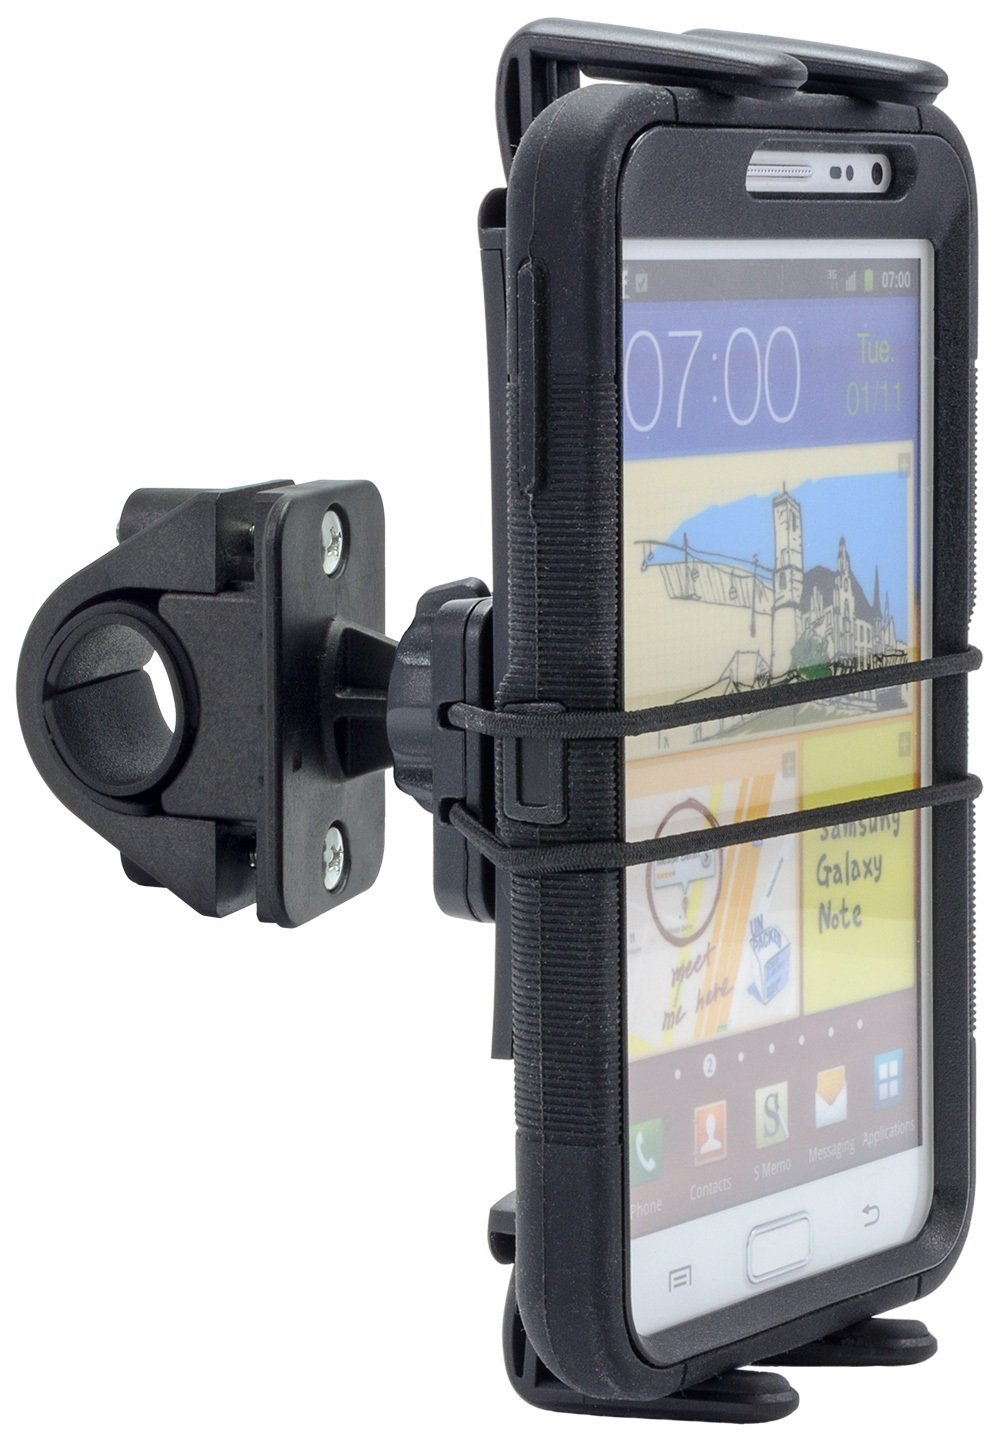 newest 8cc4f 7b725 Details about Arkon SM632 Bike Motorcycle Handlebar Mount for Google Nexus  4, 5, Nexus 7